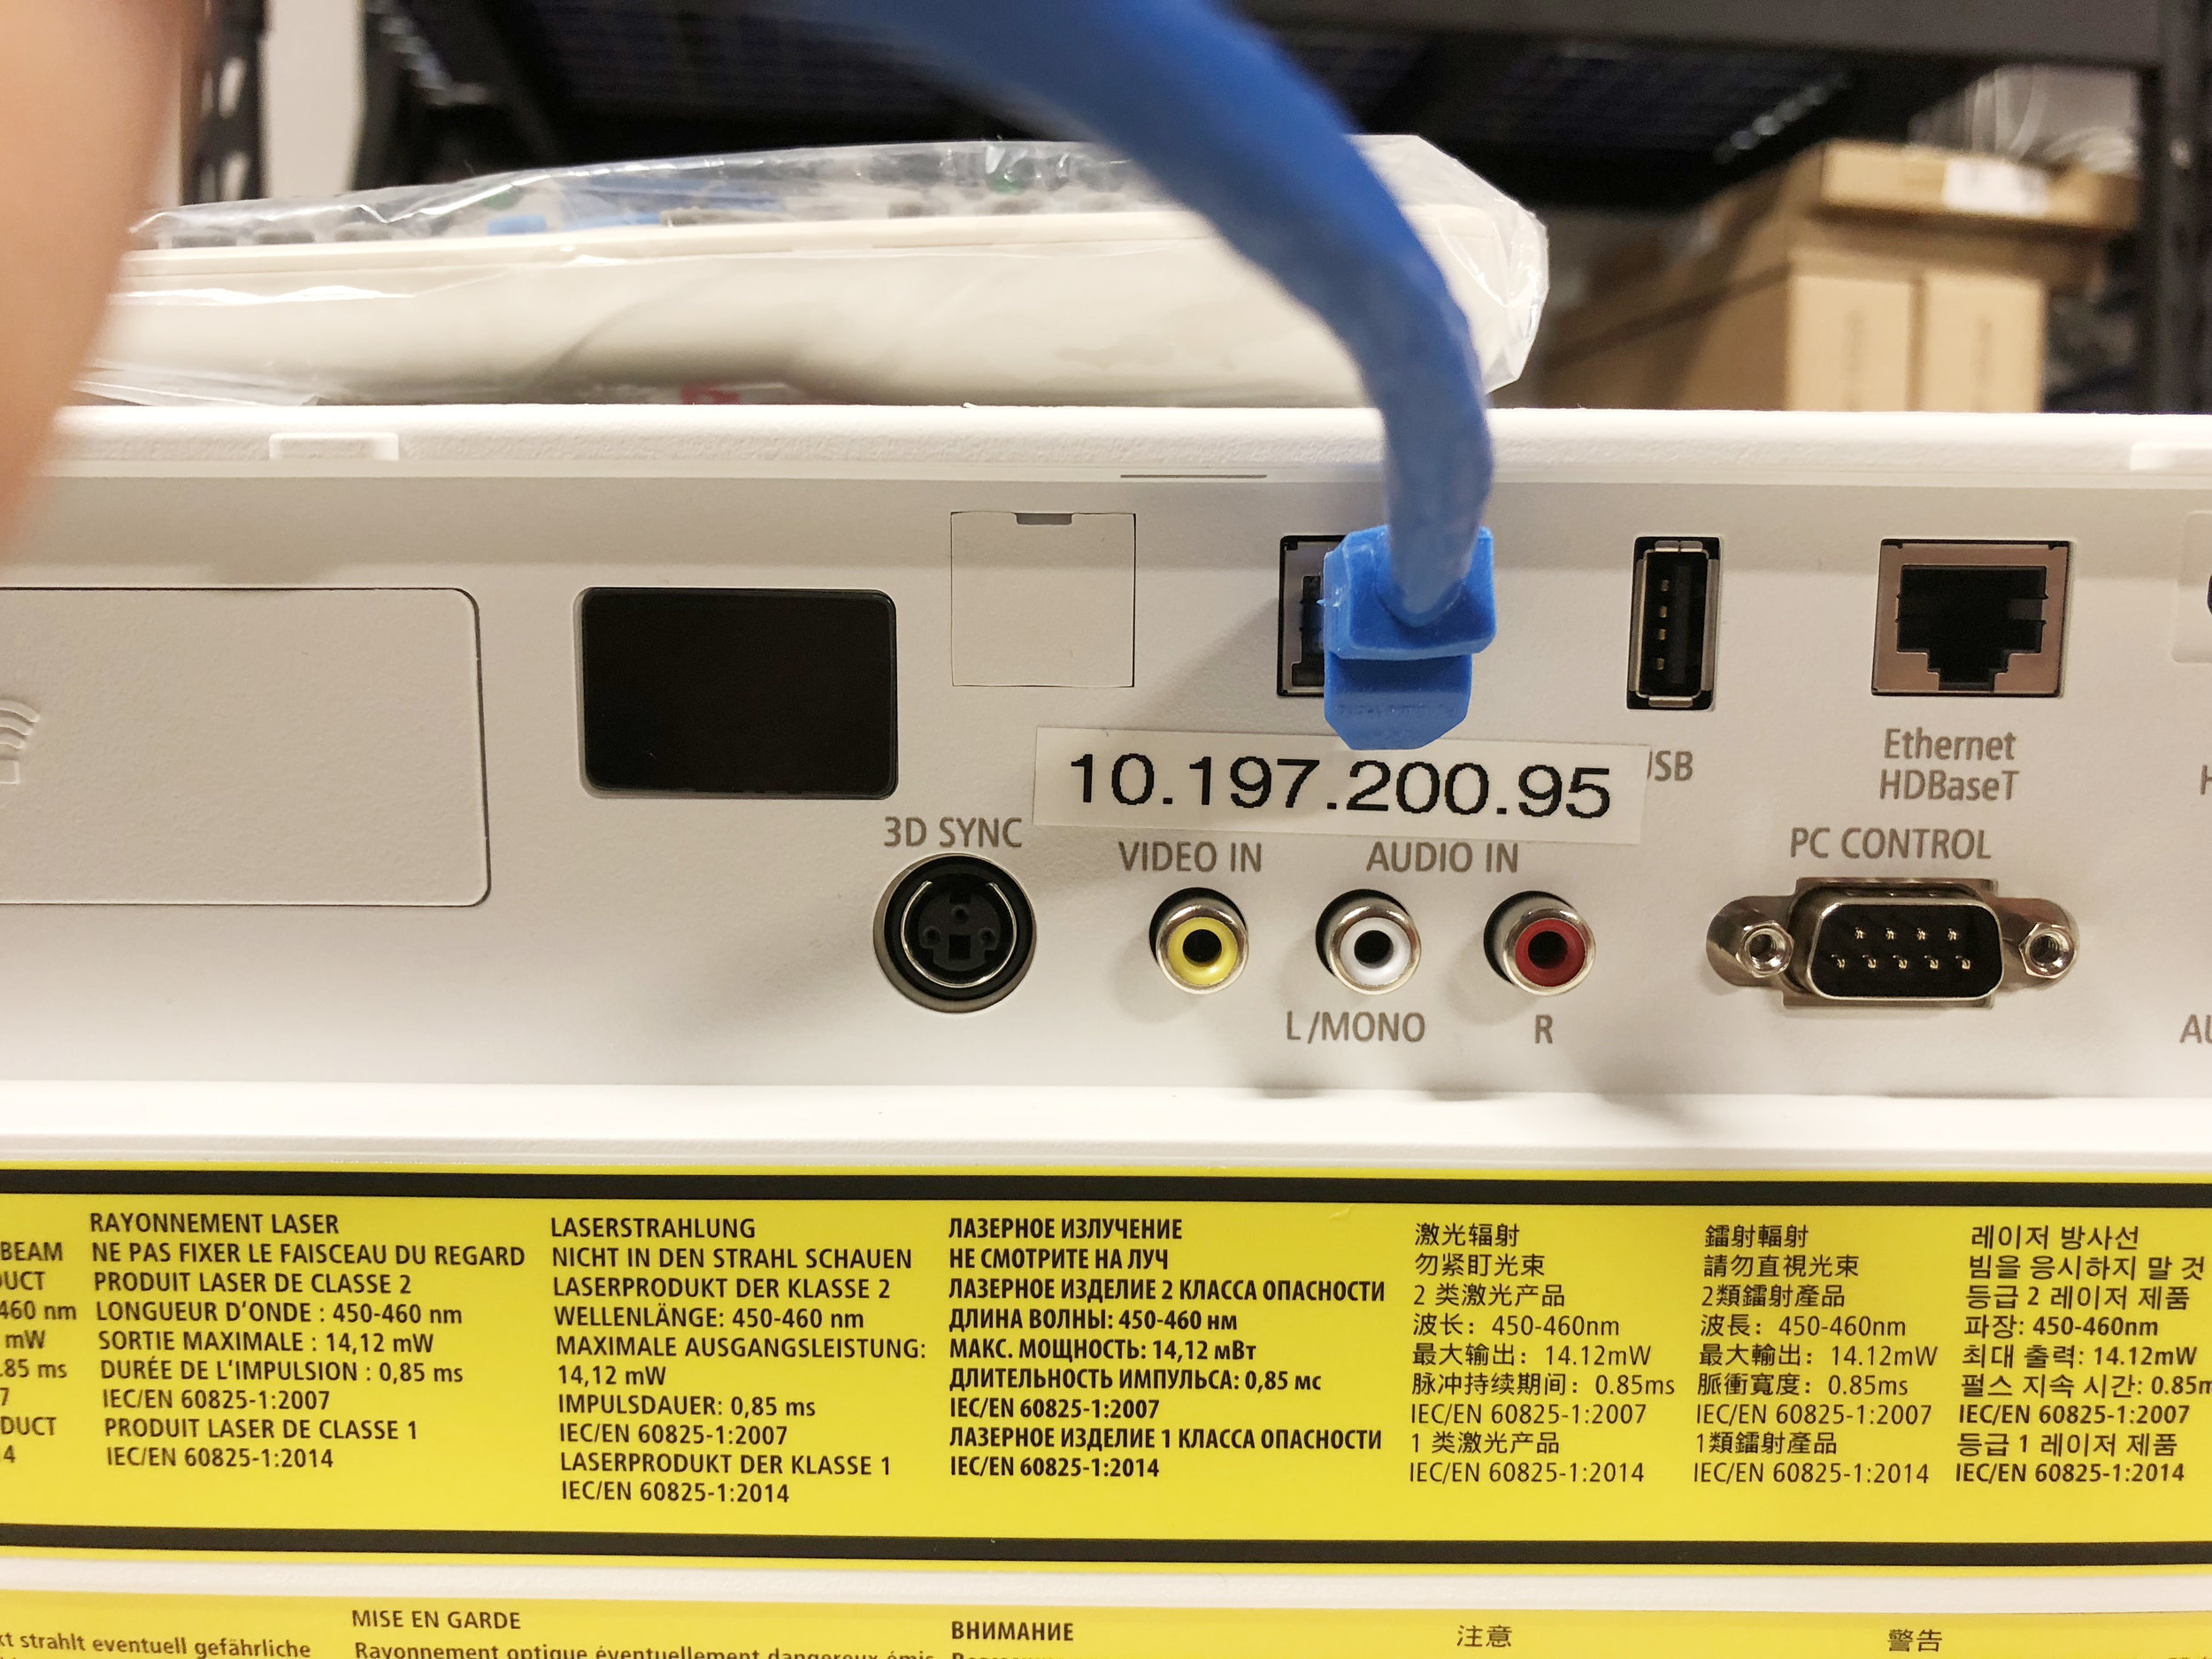 Every last component that's network connected is labelled with its IP address for easy administration after install.